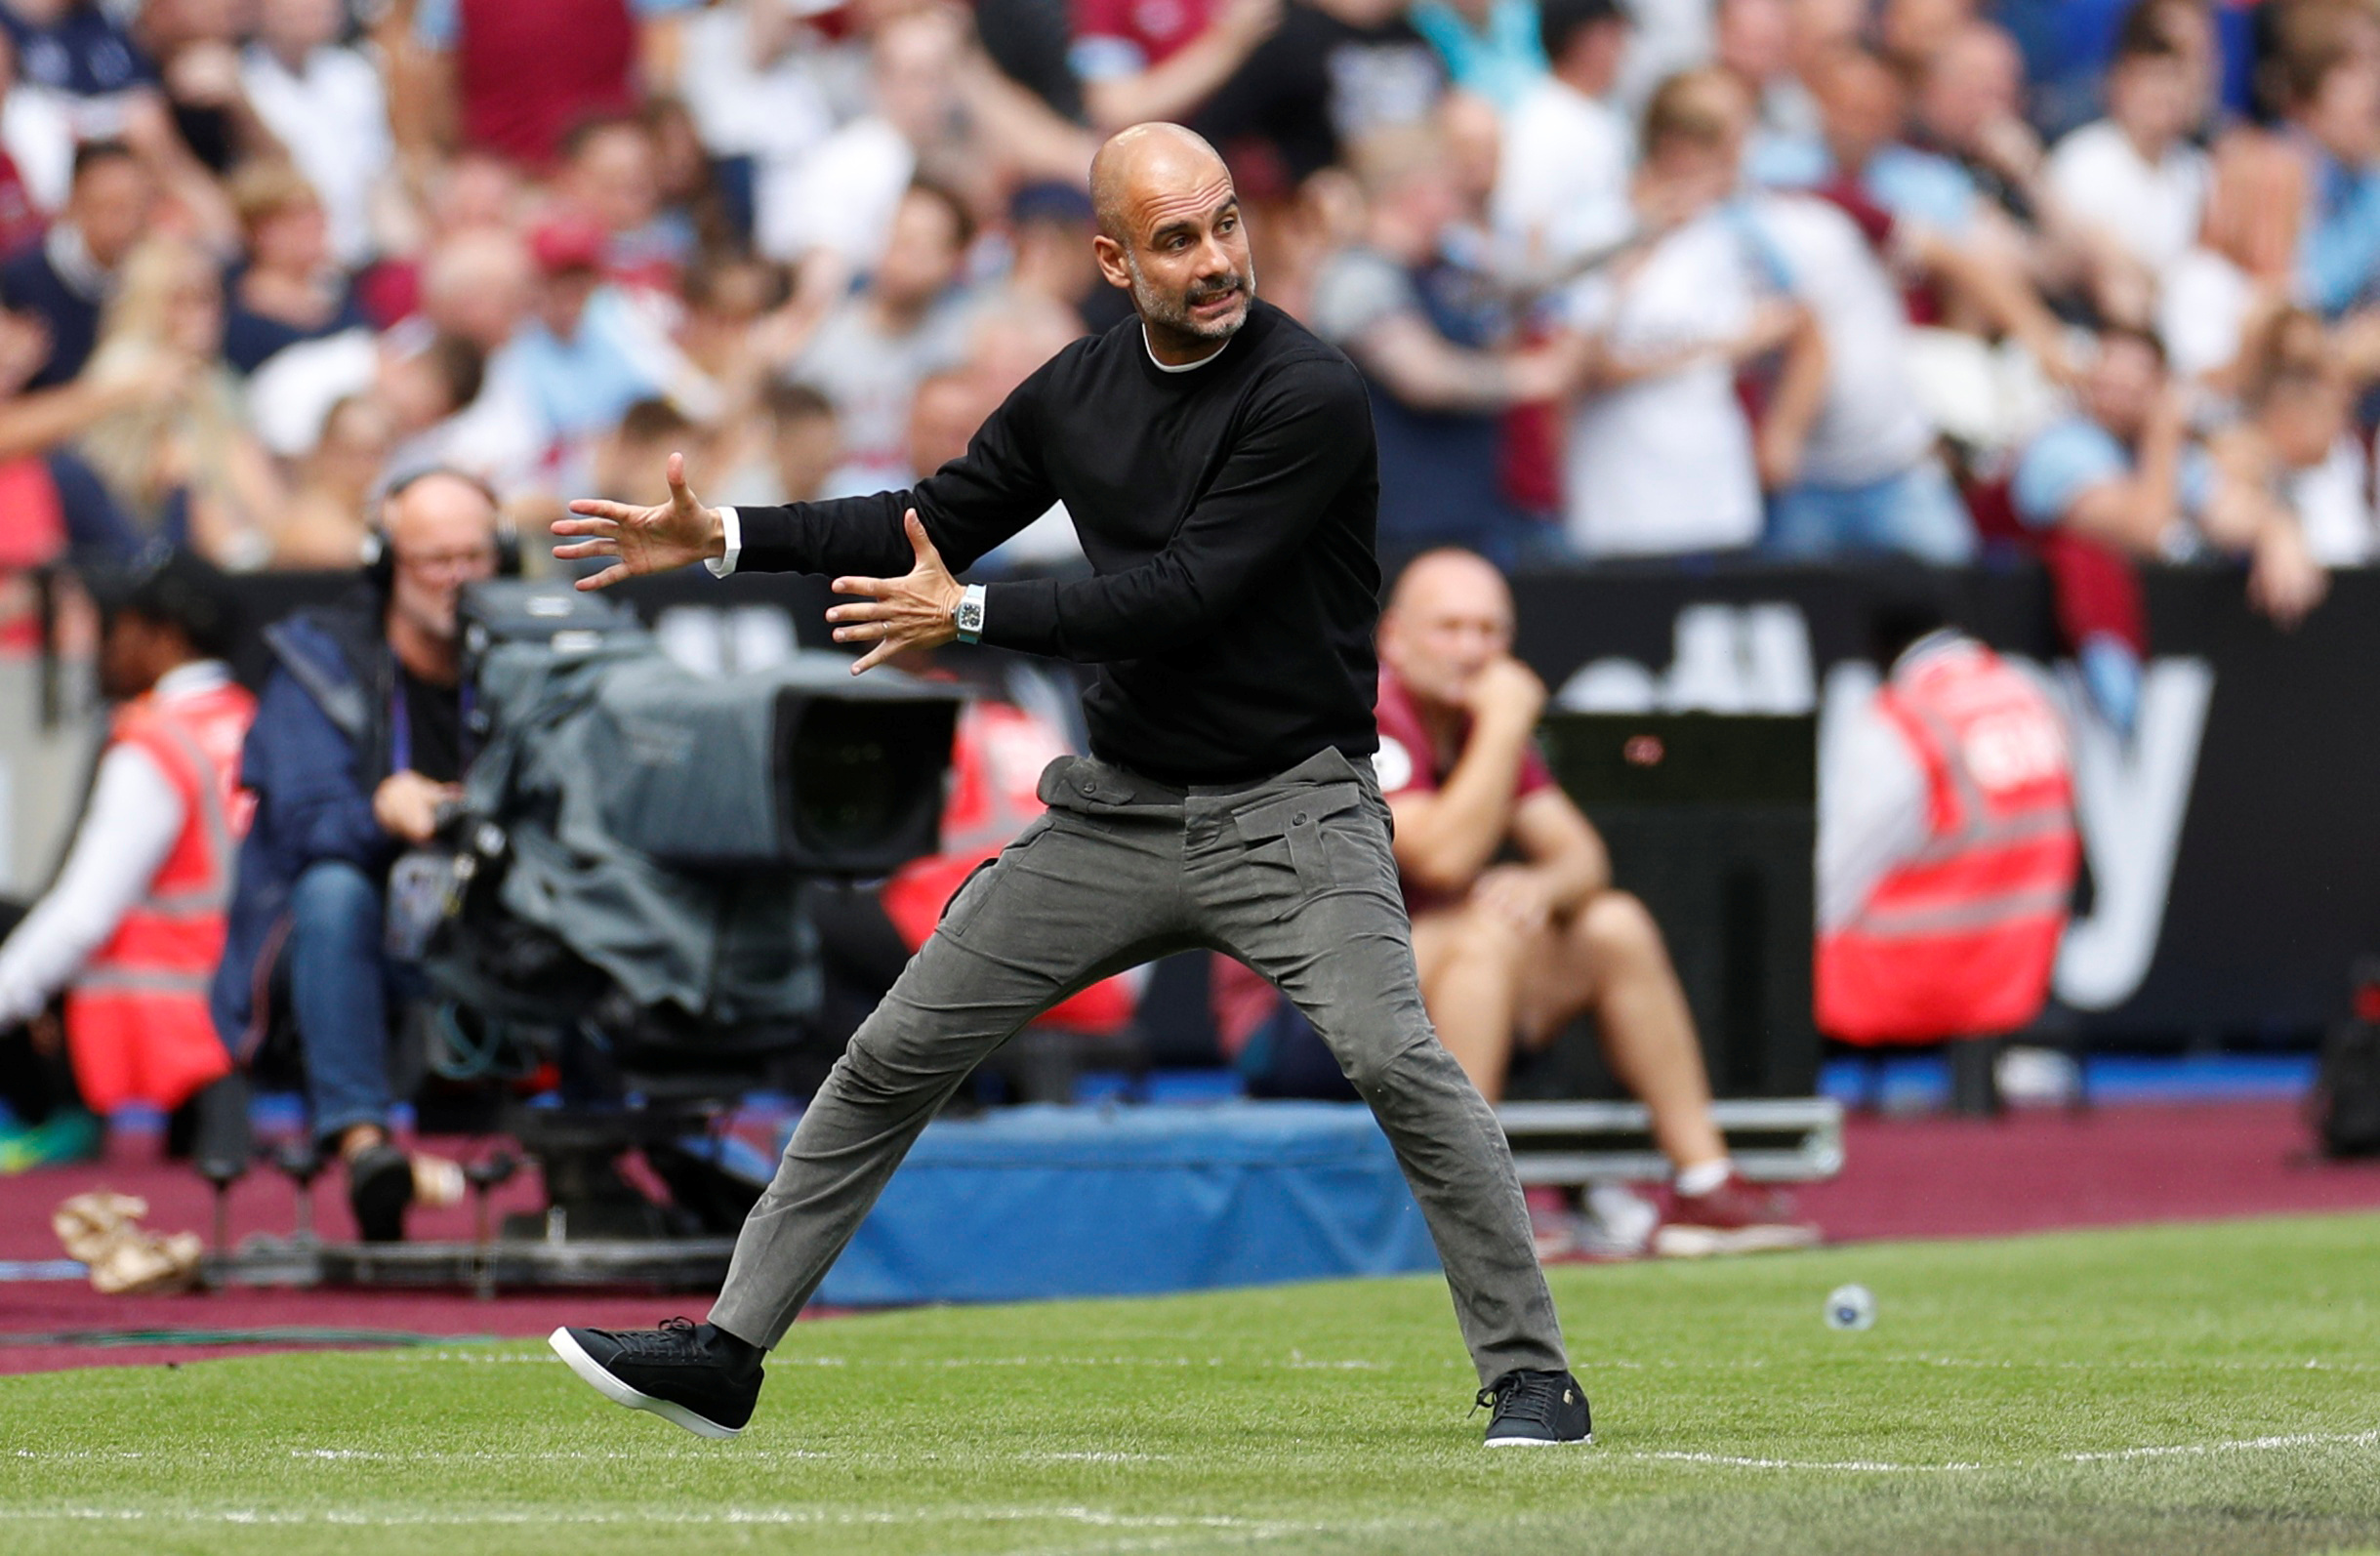 Soccer Football - Premier League - West Ham United v Manchester City - London Stadium, London, Britain - August 10, 2019  Manchester City manager Pep Guardiola gestures   Action Images via Reuters/John Sibley  EDITORIAL USE ONLY. No use with unauthorized audio, video, data, fixture lists, club/league logos or